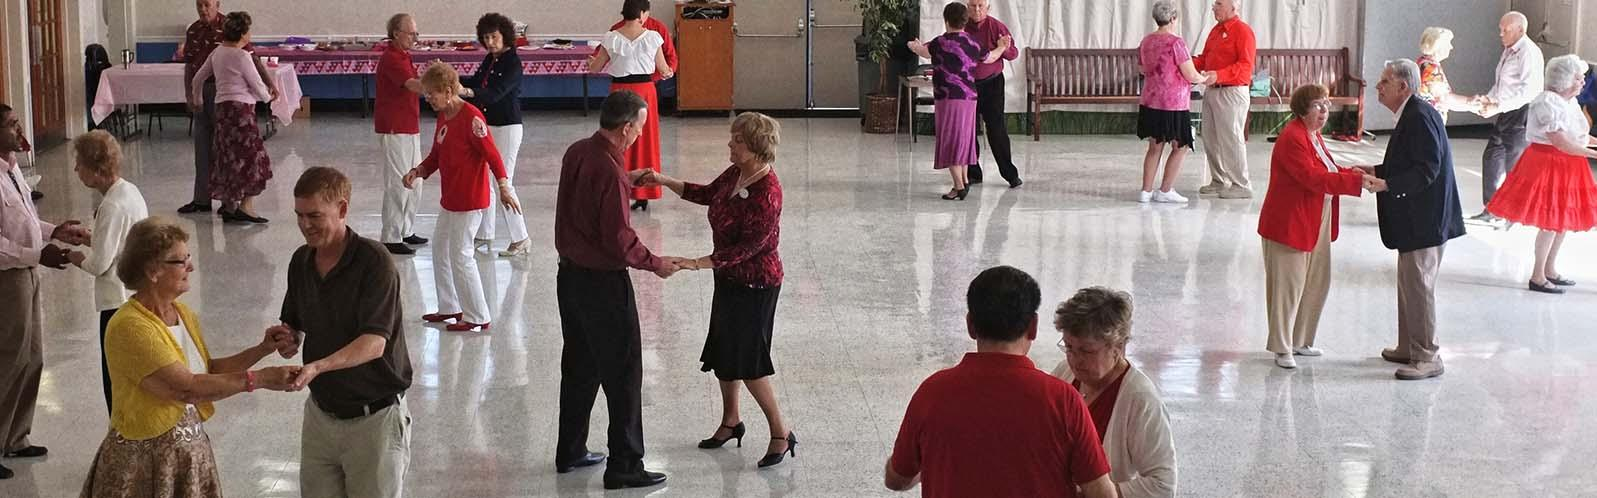 adults dancing